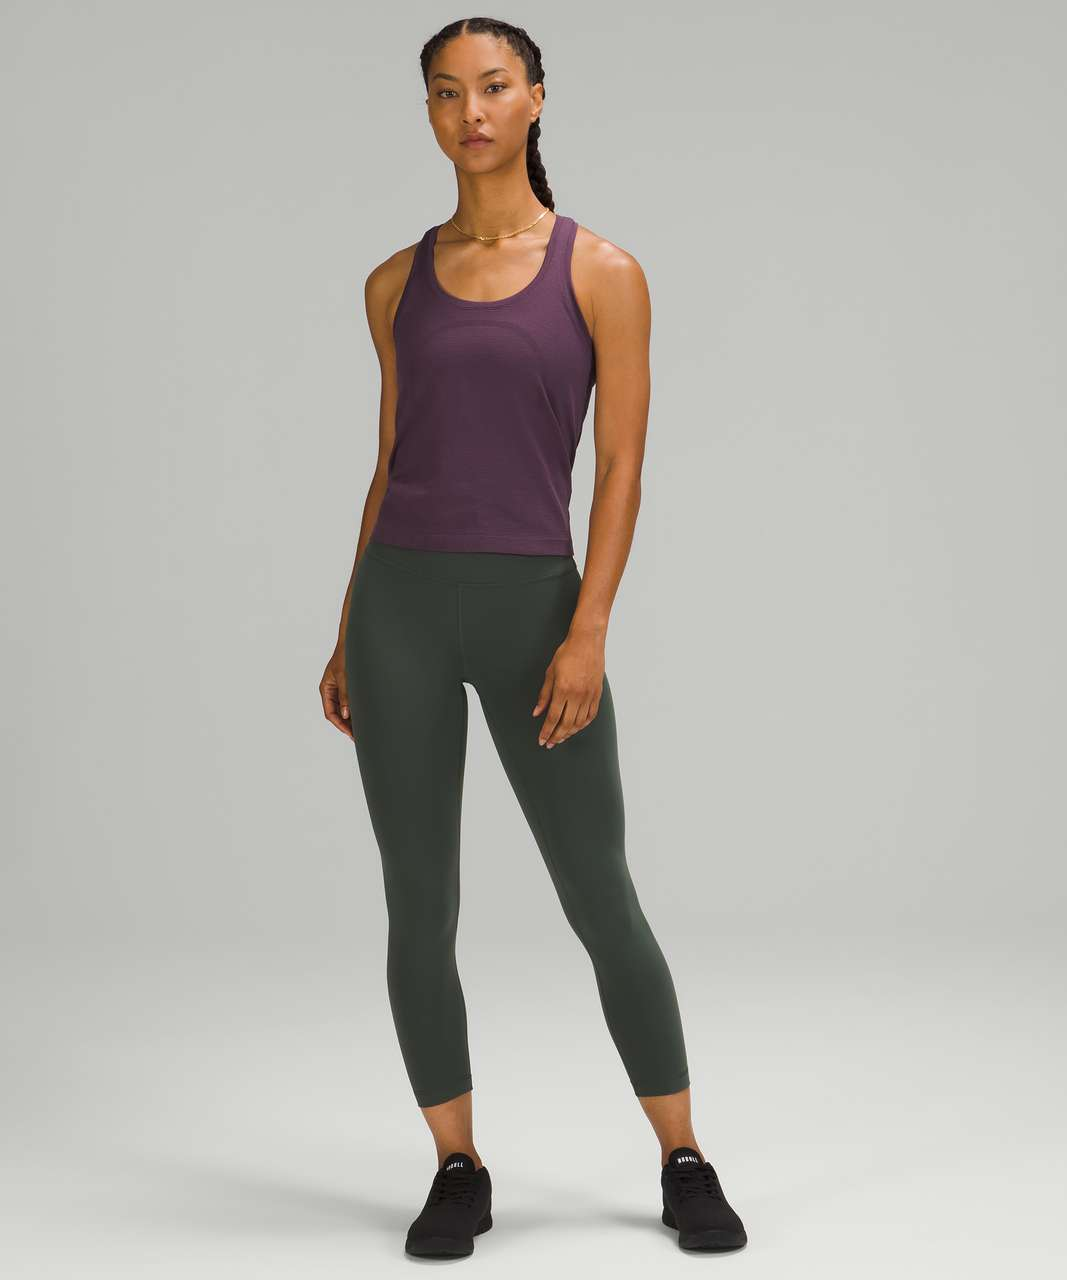 Lululemon Swiftly Tech Racerback 2.0 *Race Length - Grape Thistle / Grape Thistle